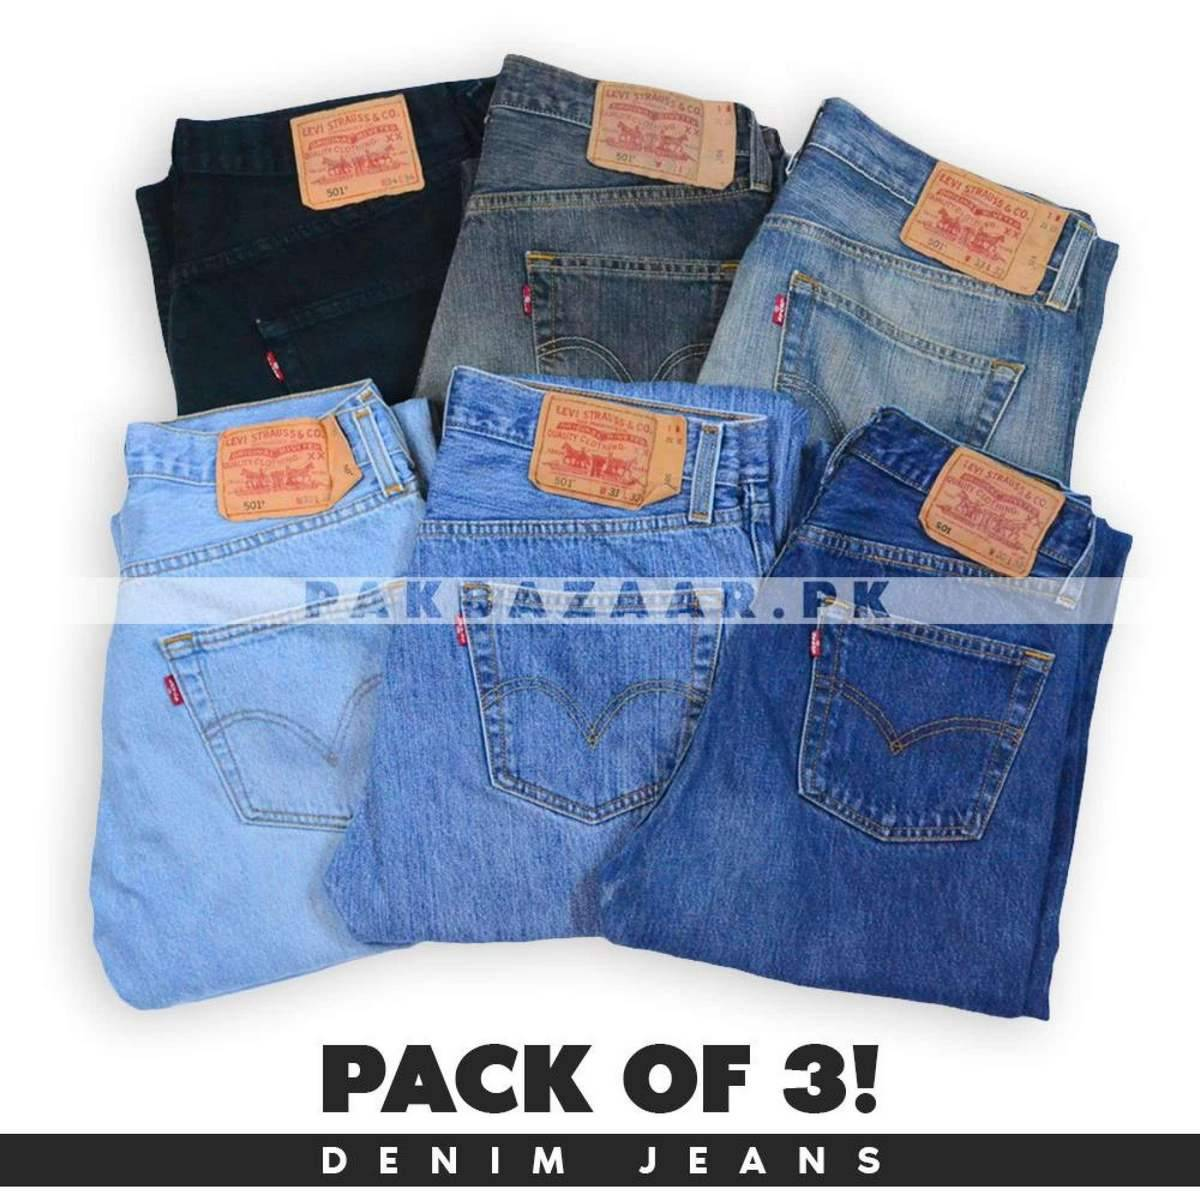 Pack of 3 Denim Jeans By AW Jeans Exporters